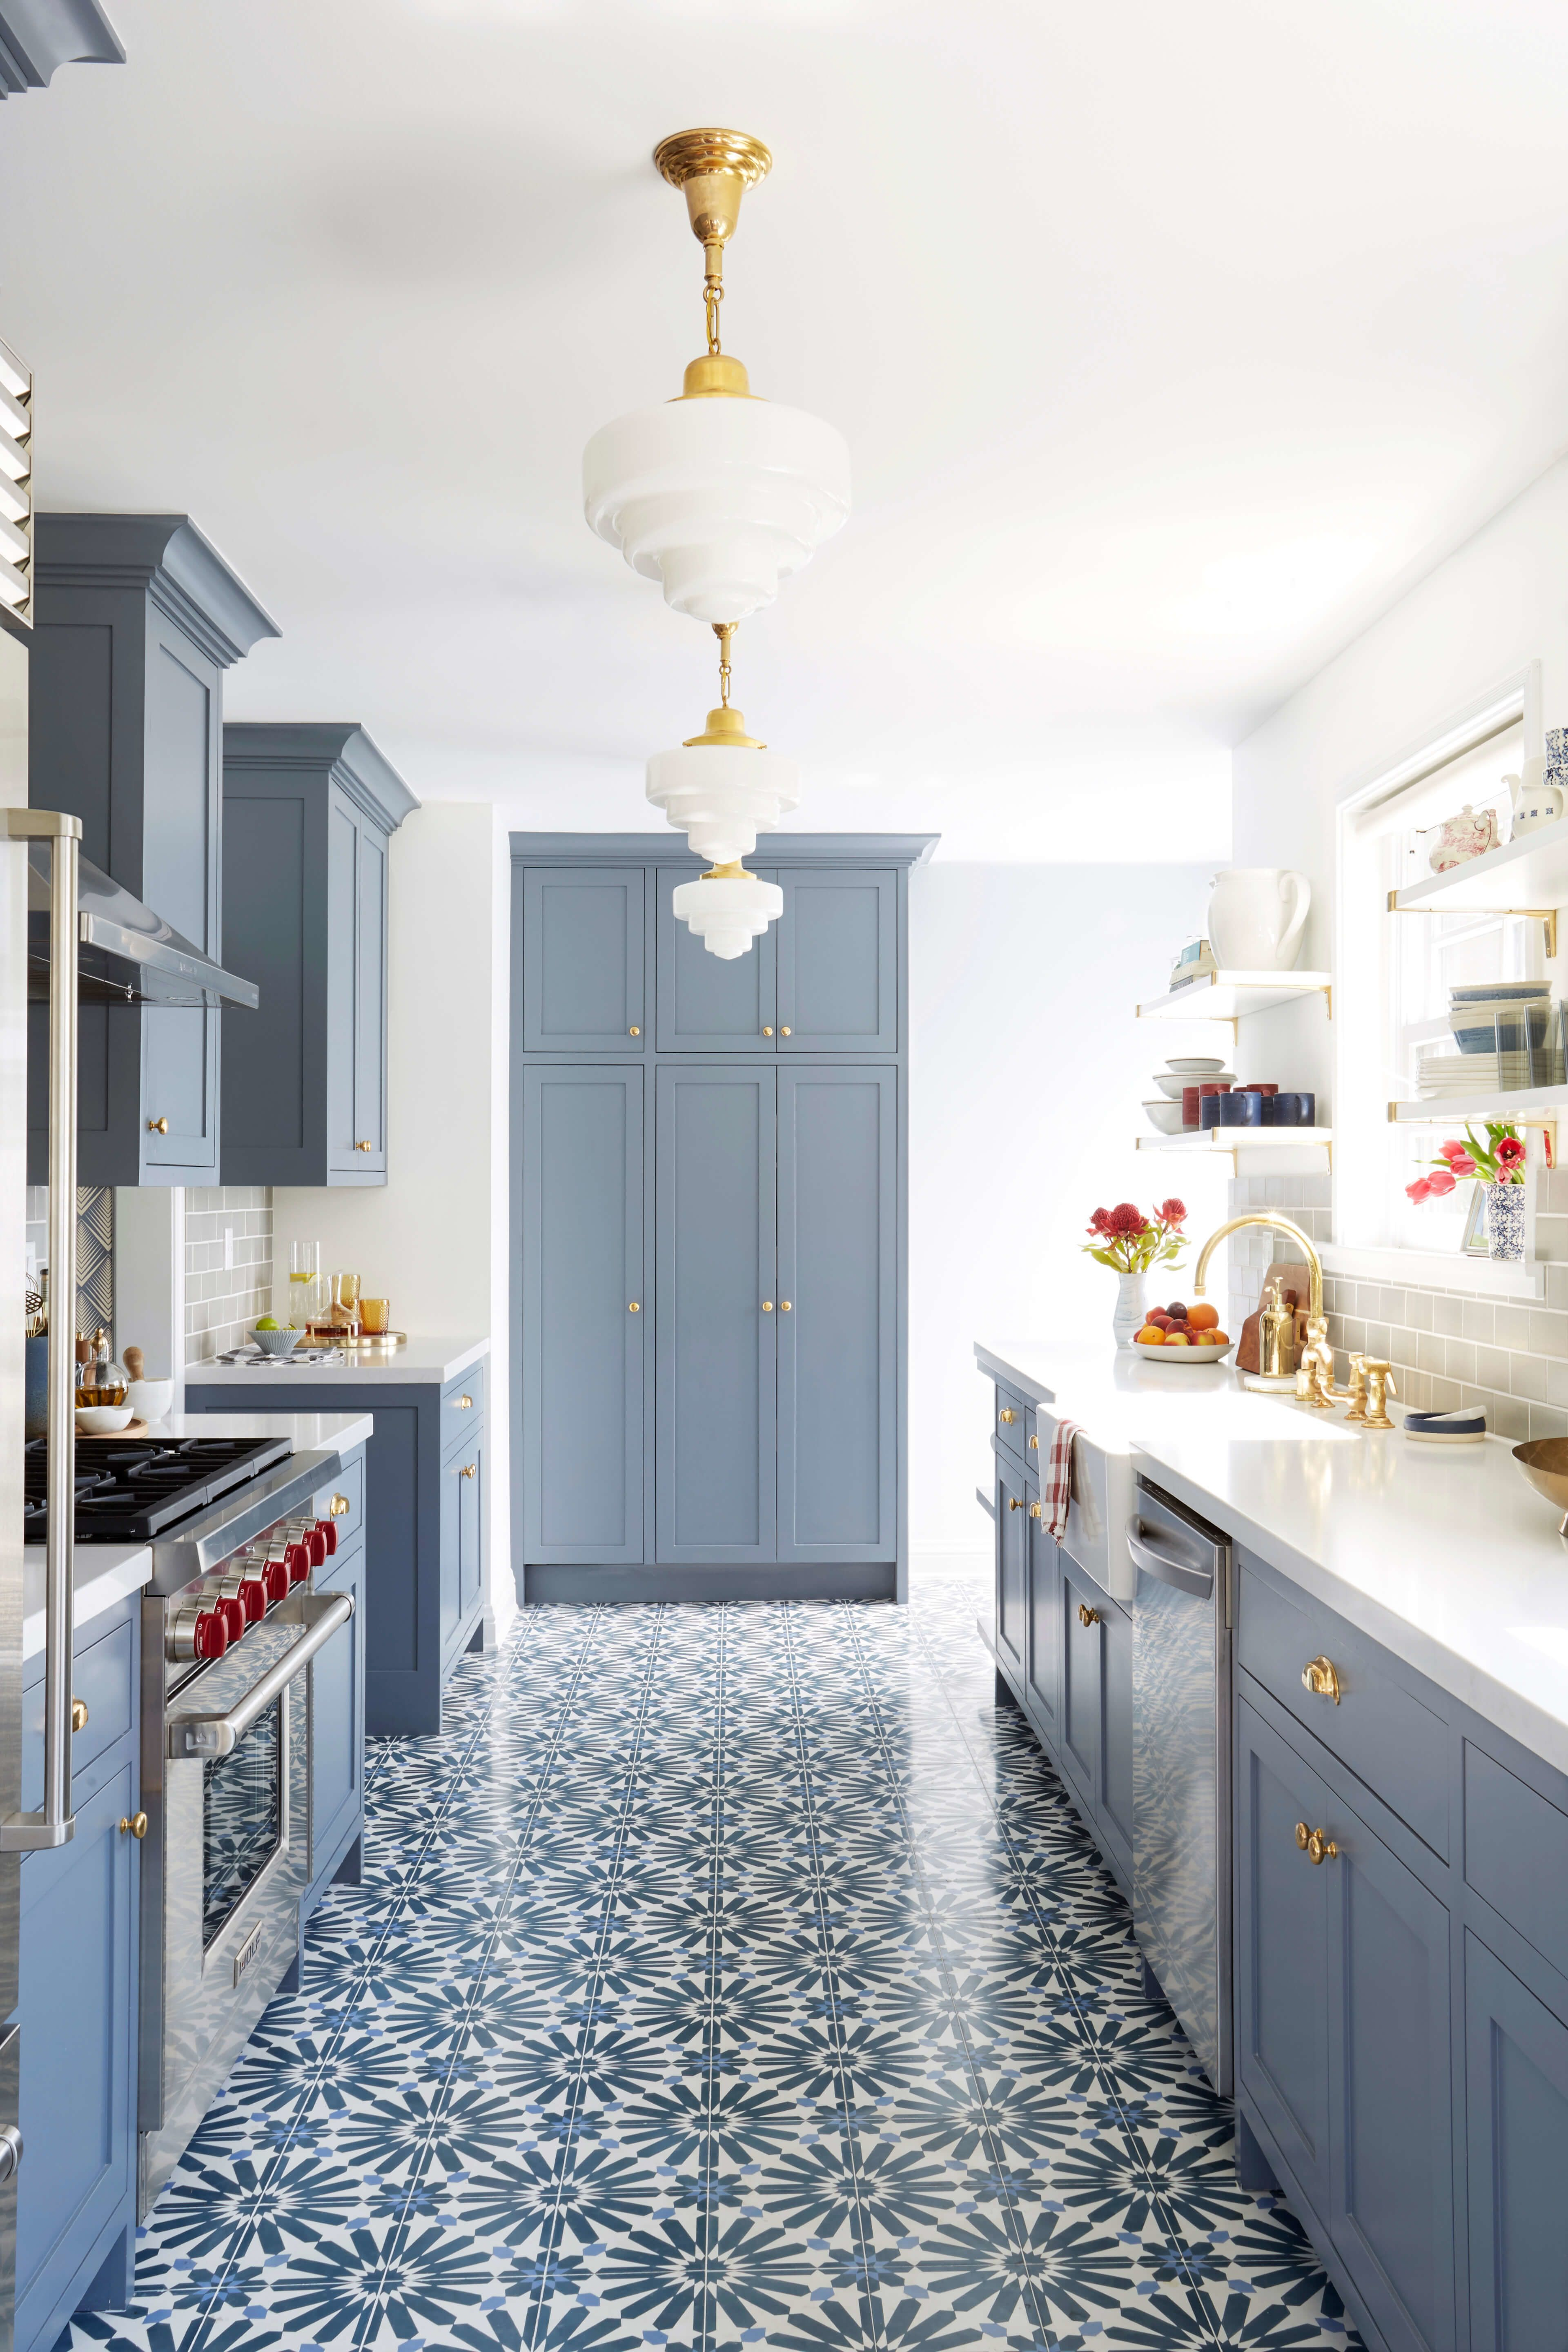 Design Ideas And Practical Uses For Corner